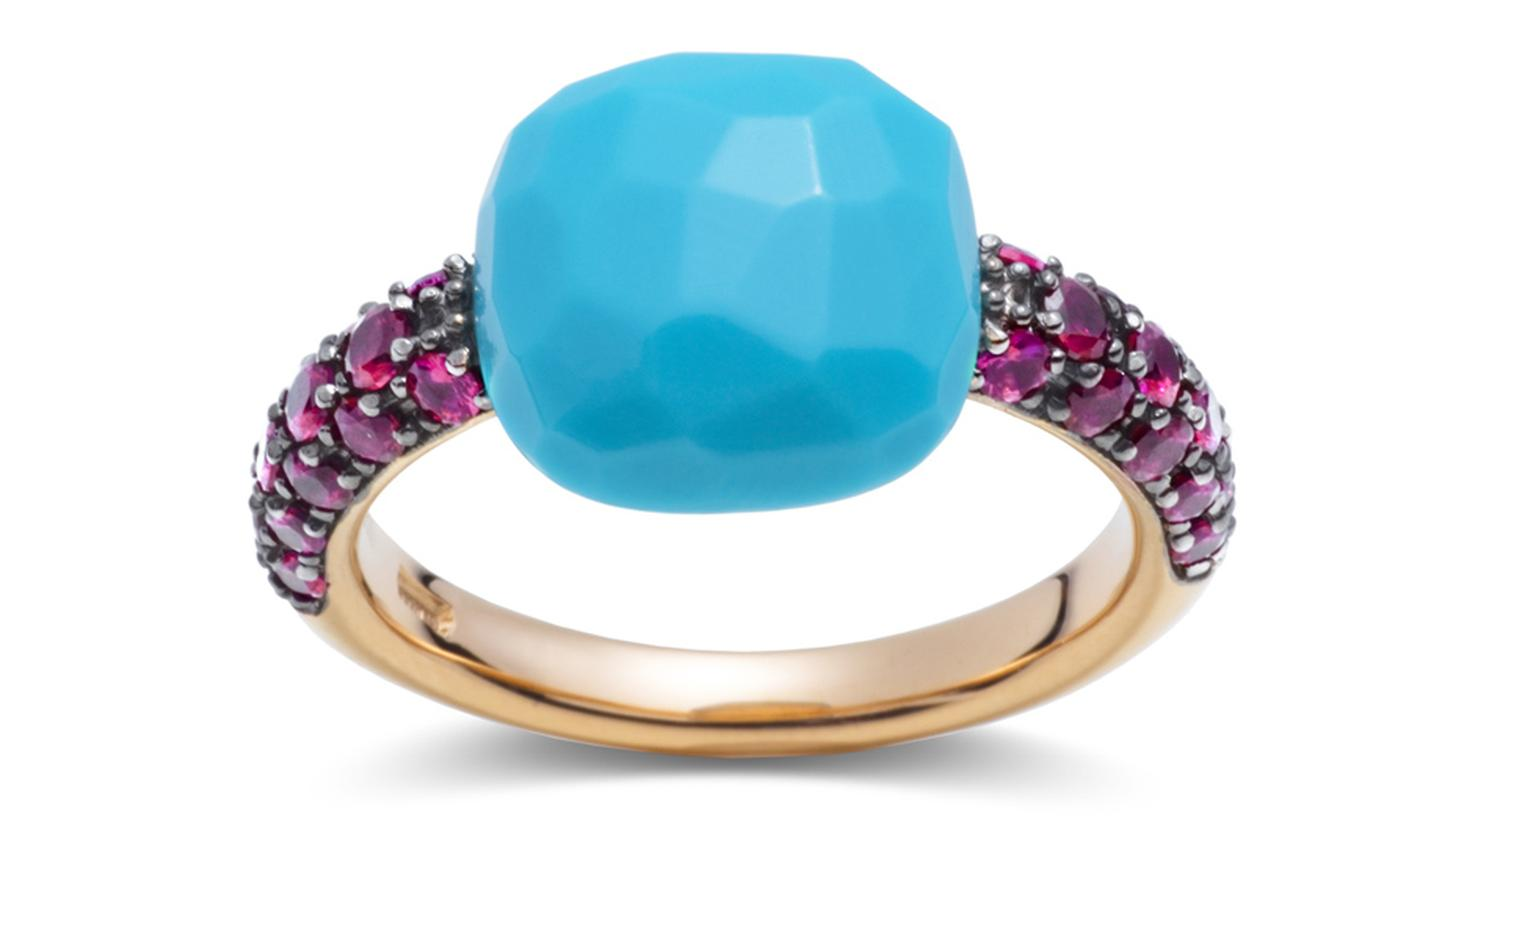 POMELLATO, Capri ring, rose gold with turquoise and rubies. £2,045